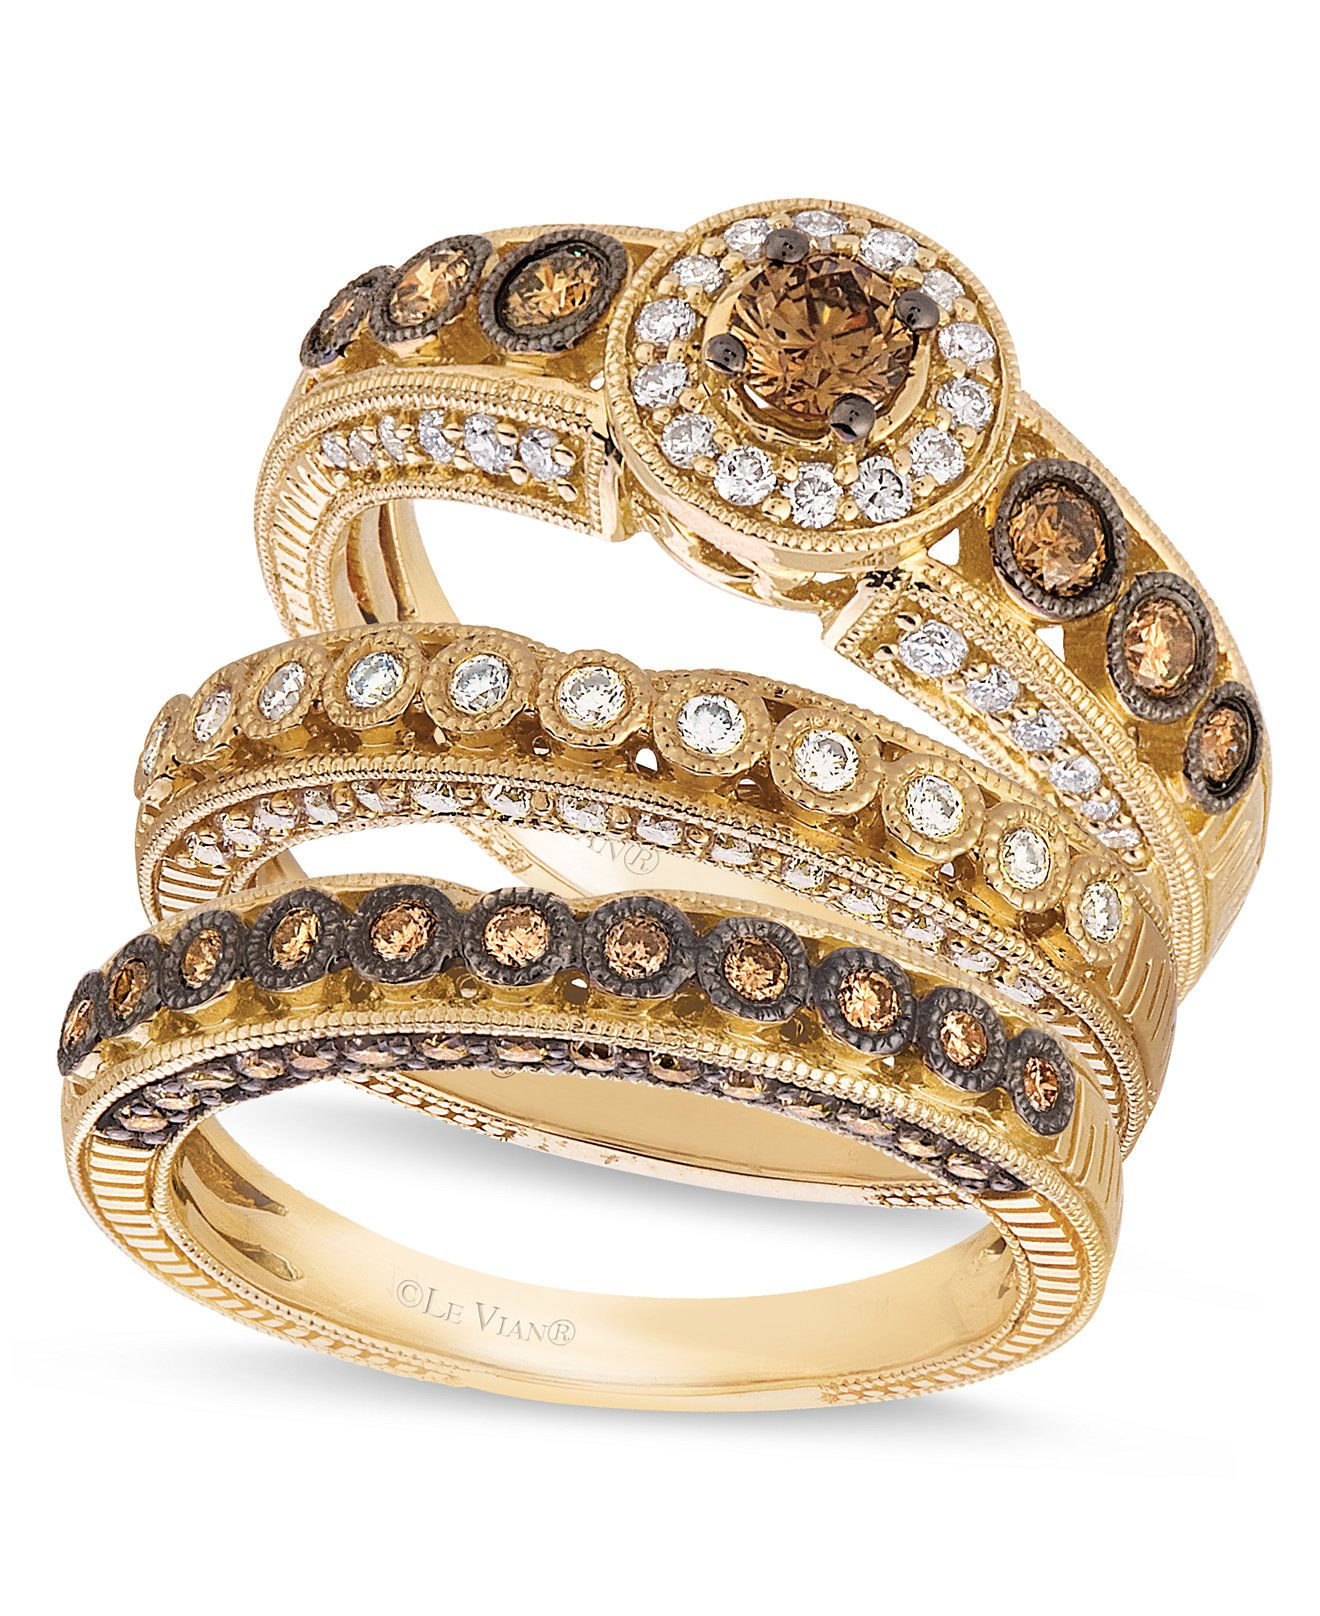 Le Vian Chocolate and White Diamond Stackable Rings in 14k Gold